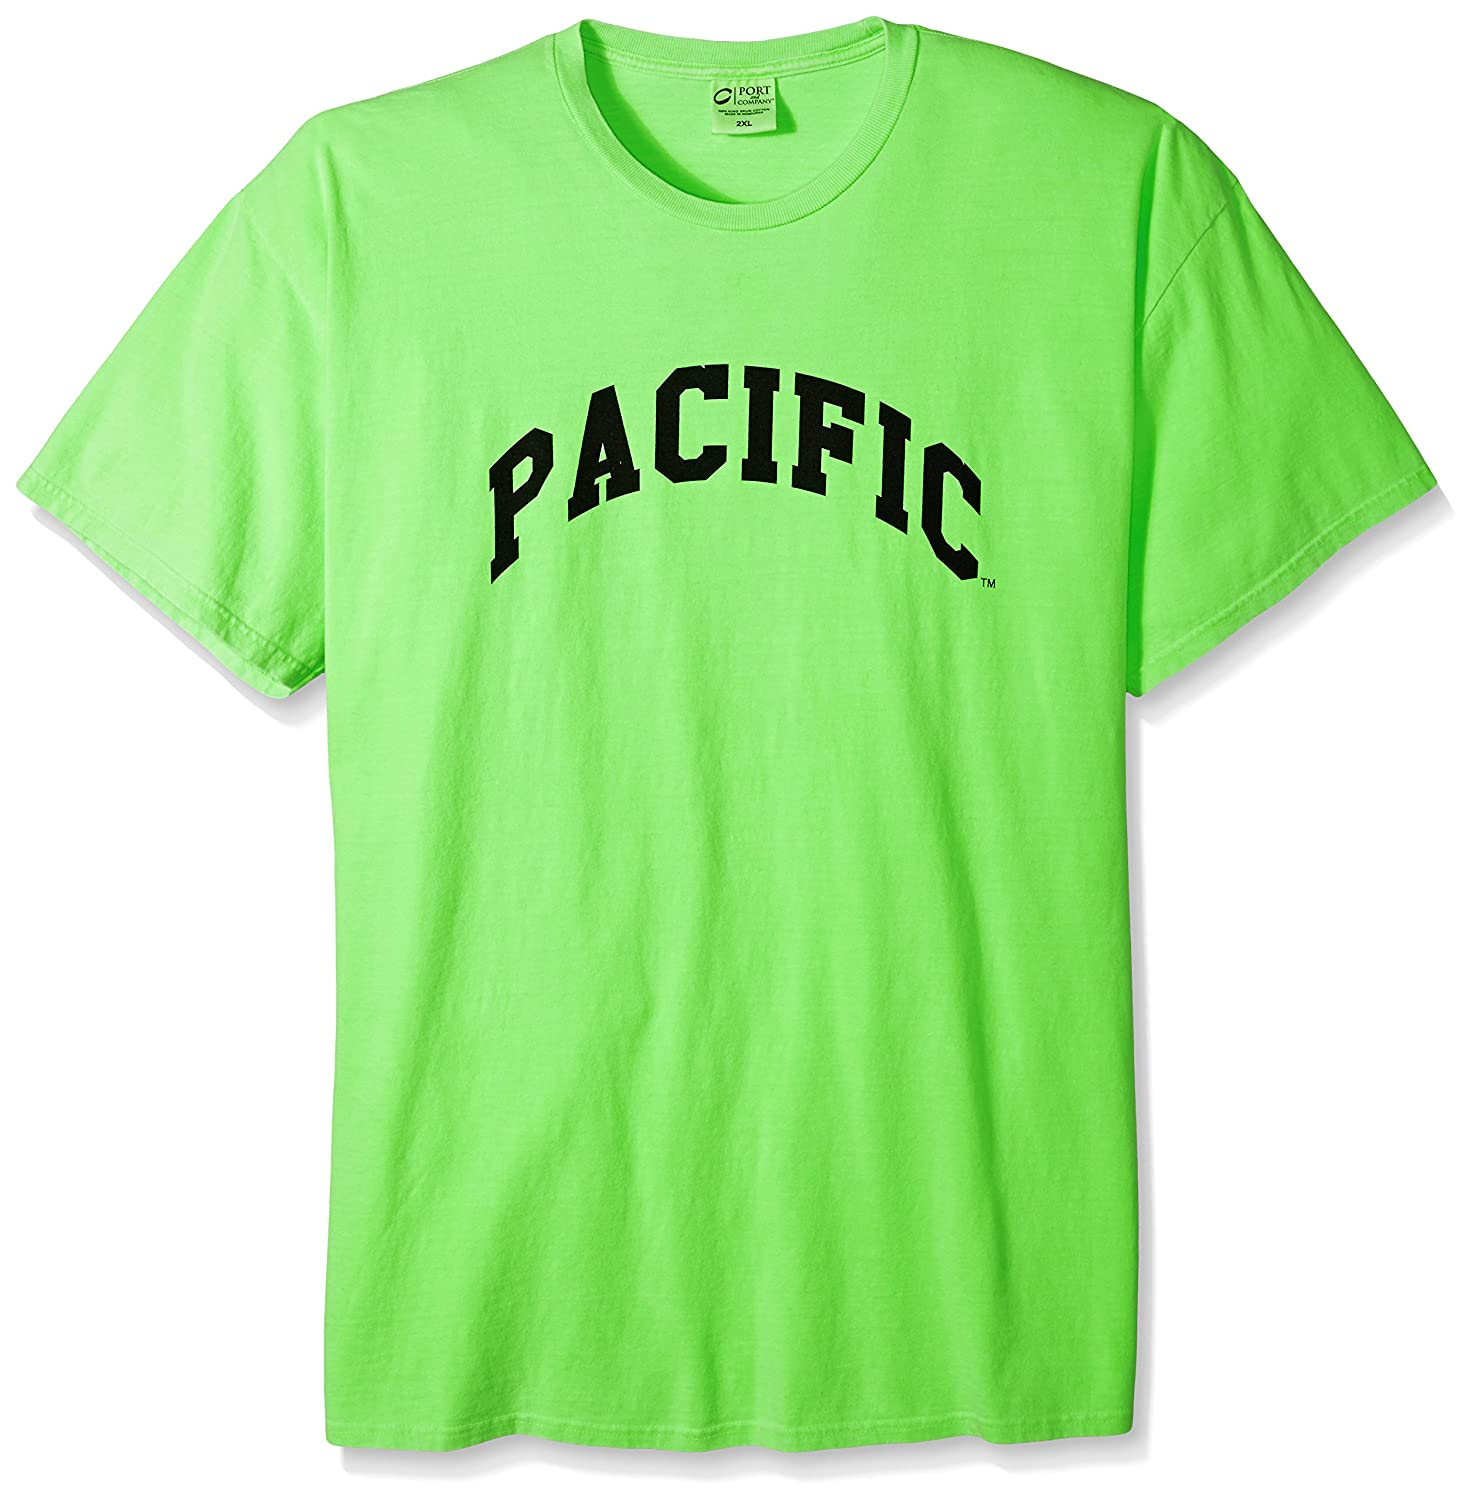 NCAA Pacific Boxers T-Shirt V1